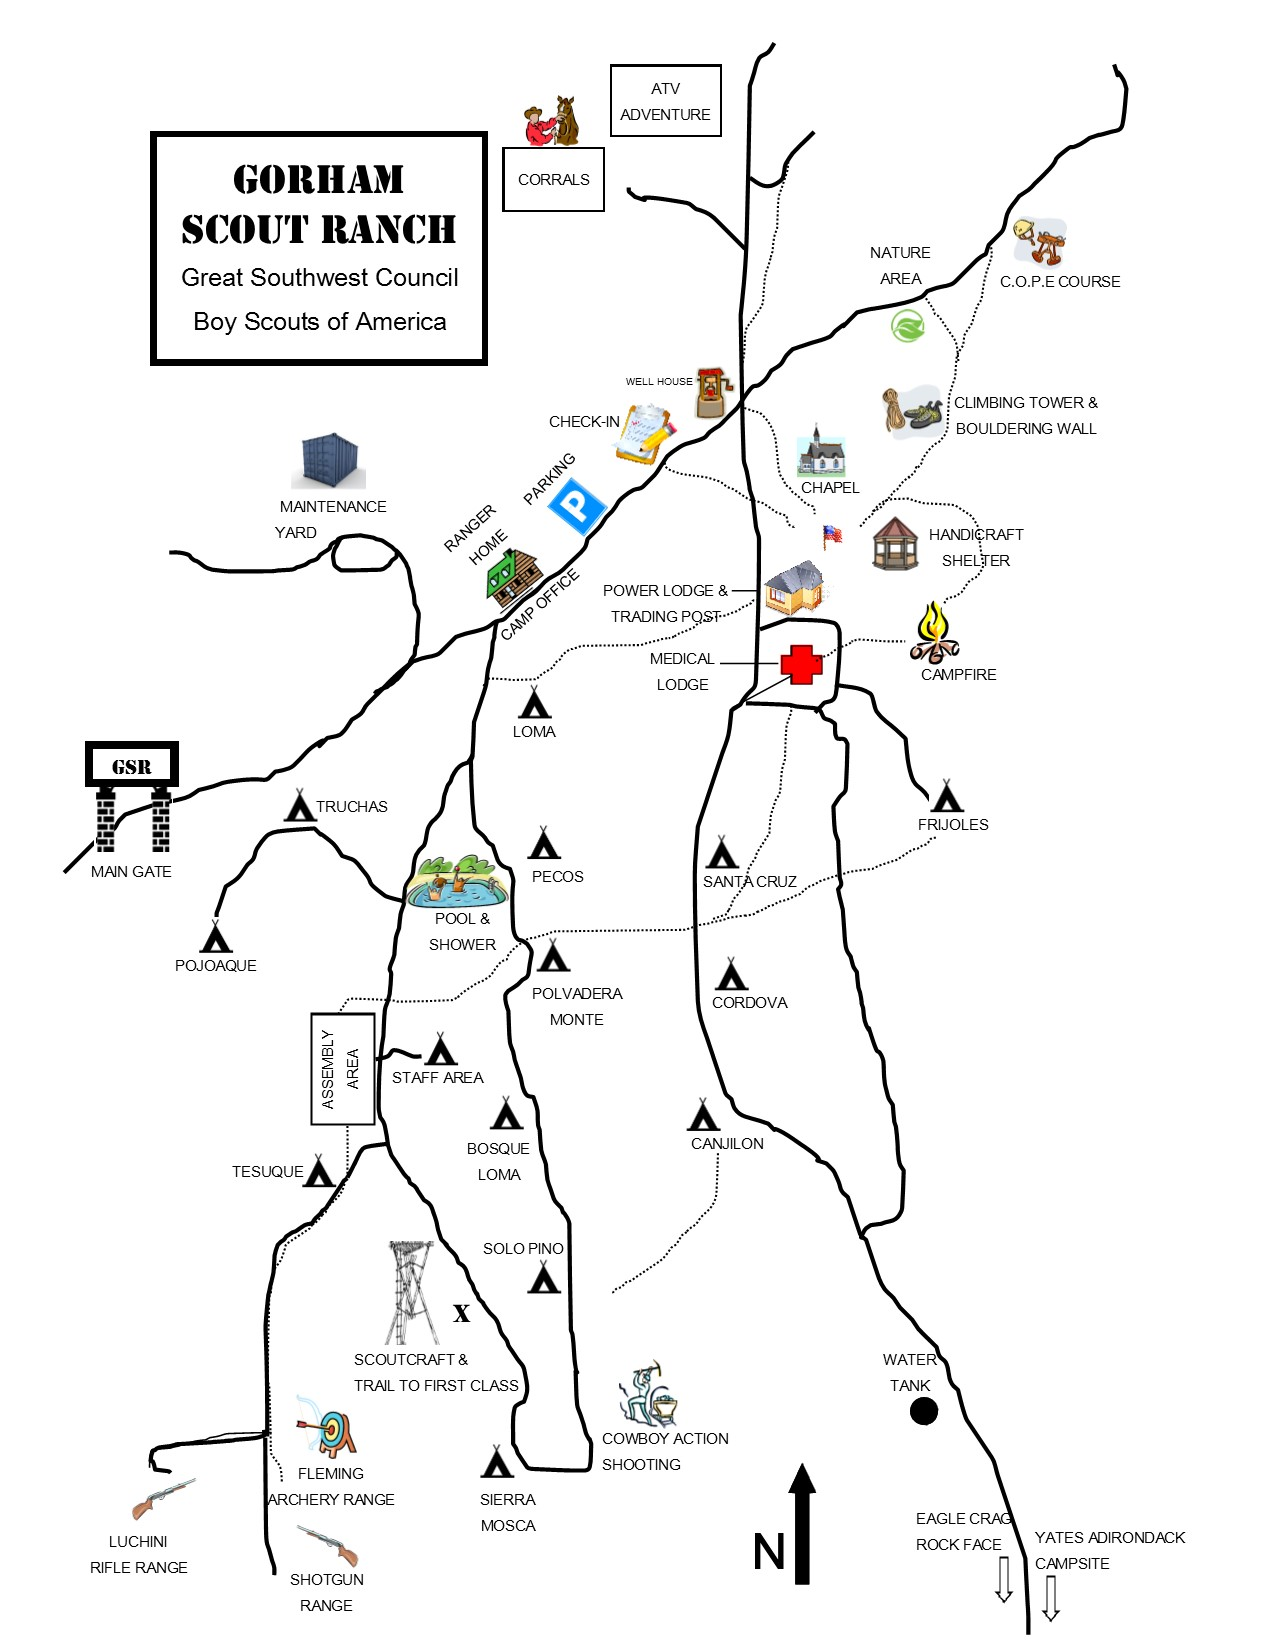 Map of Gorham Scout Ranch